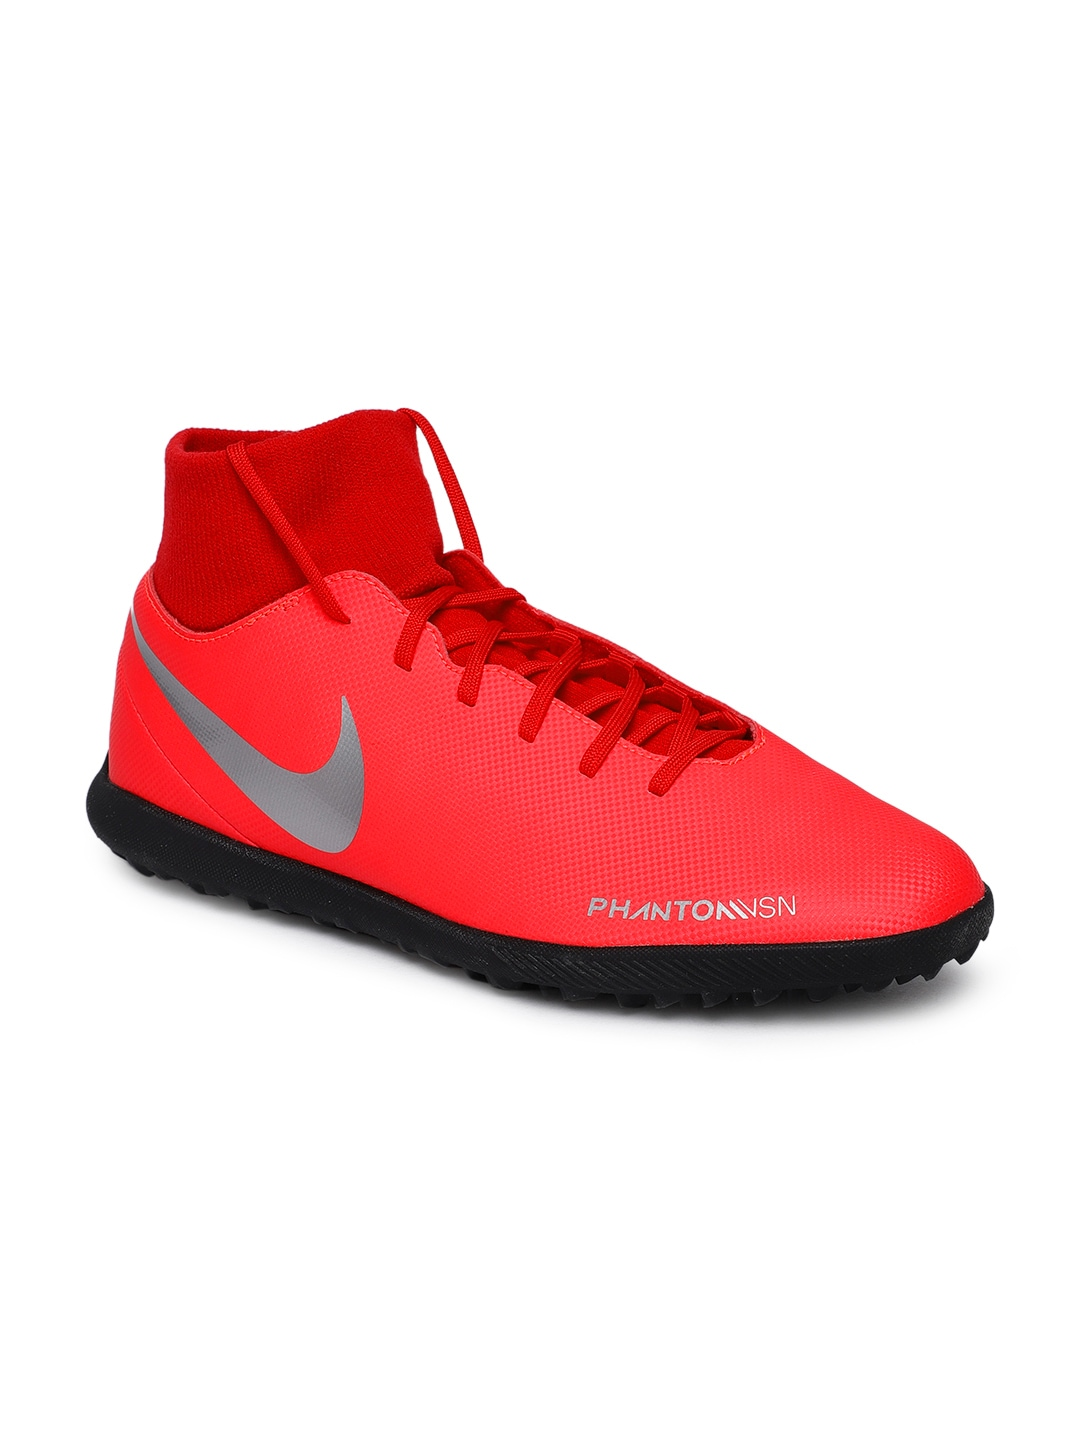 timeless design 374f8 4657c Nike Shoes - Buy Nike Shoes for Men, Women   Kids Online   Myntra